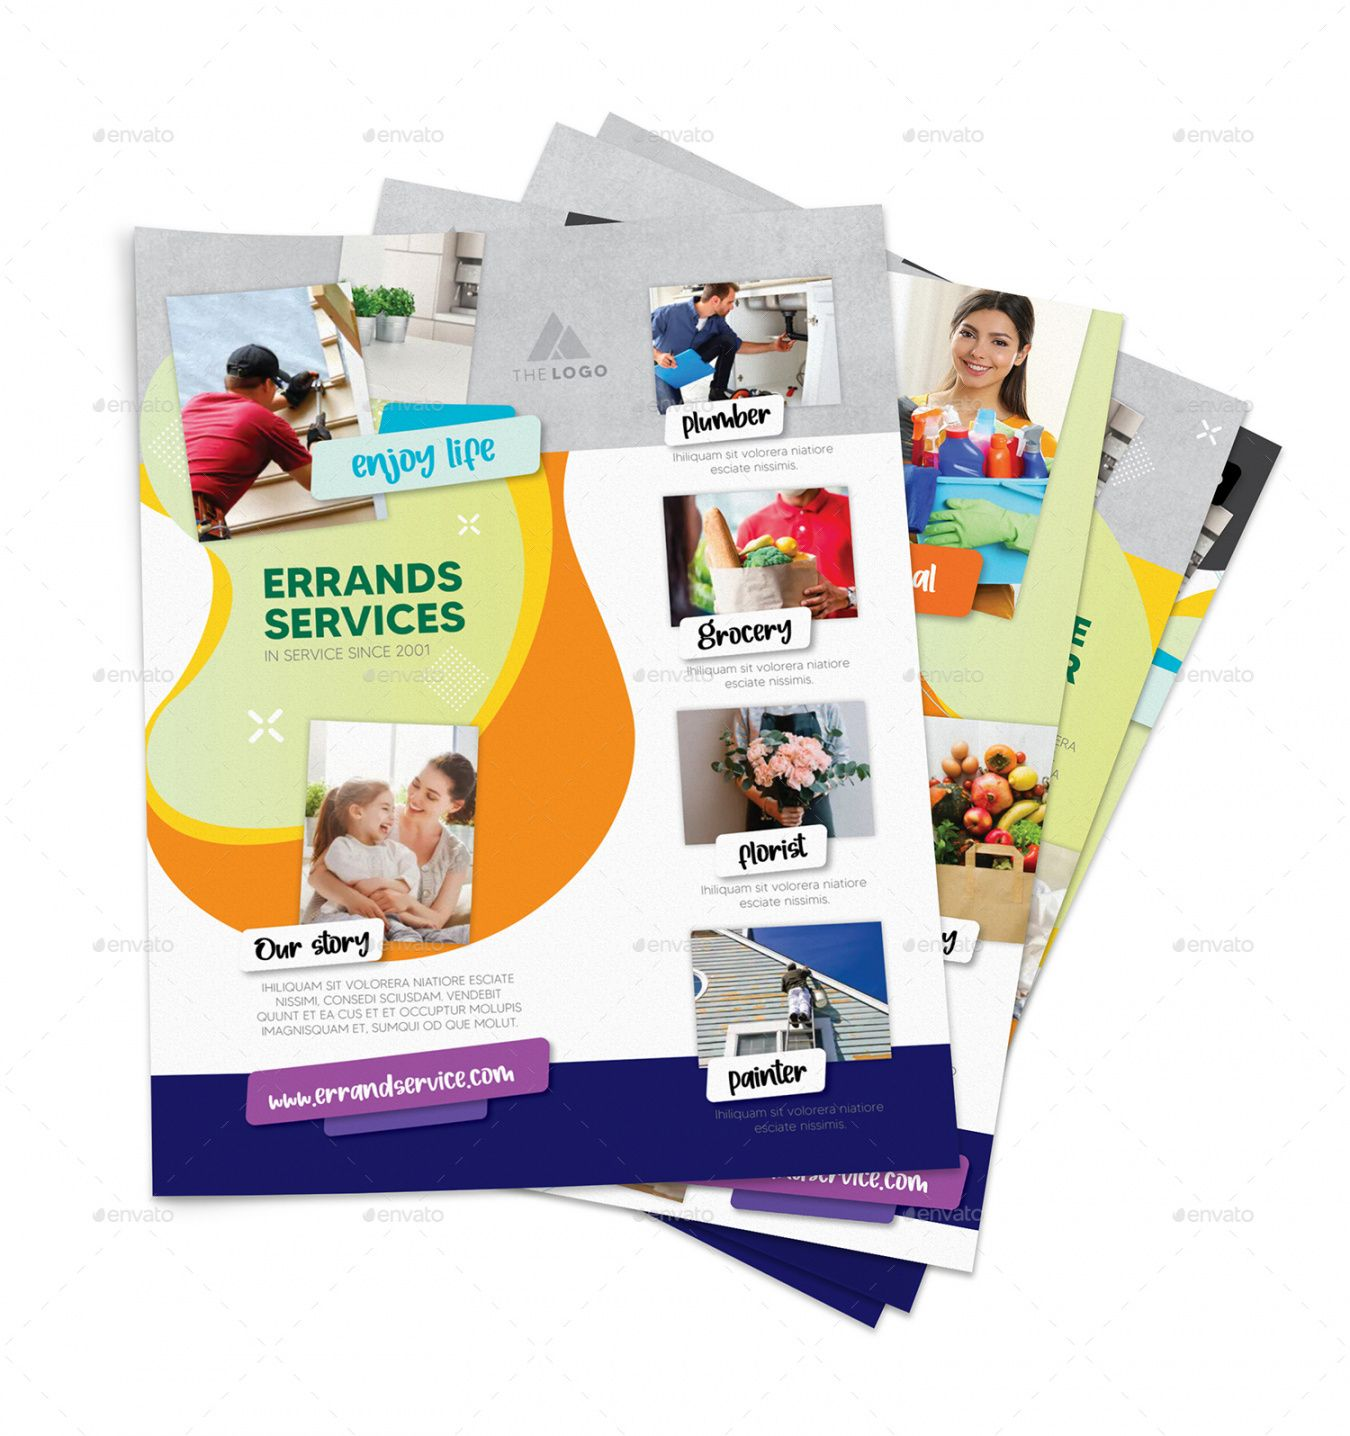 Errand Service Flyer Template Word Example